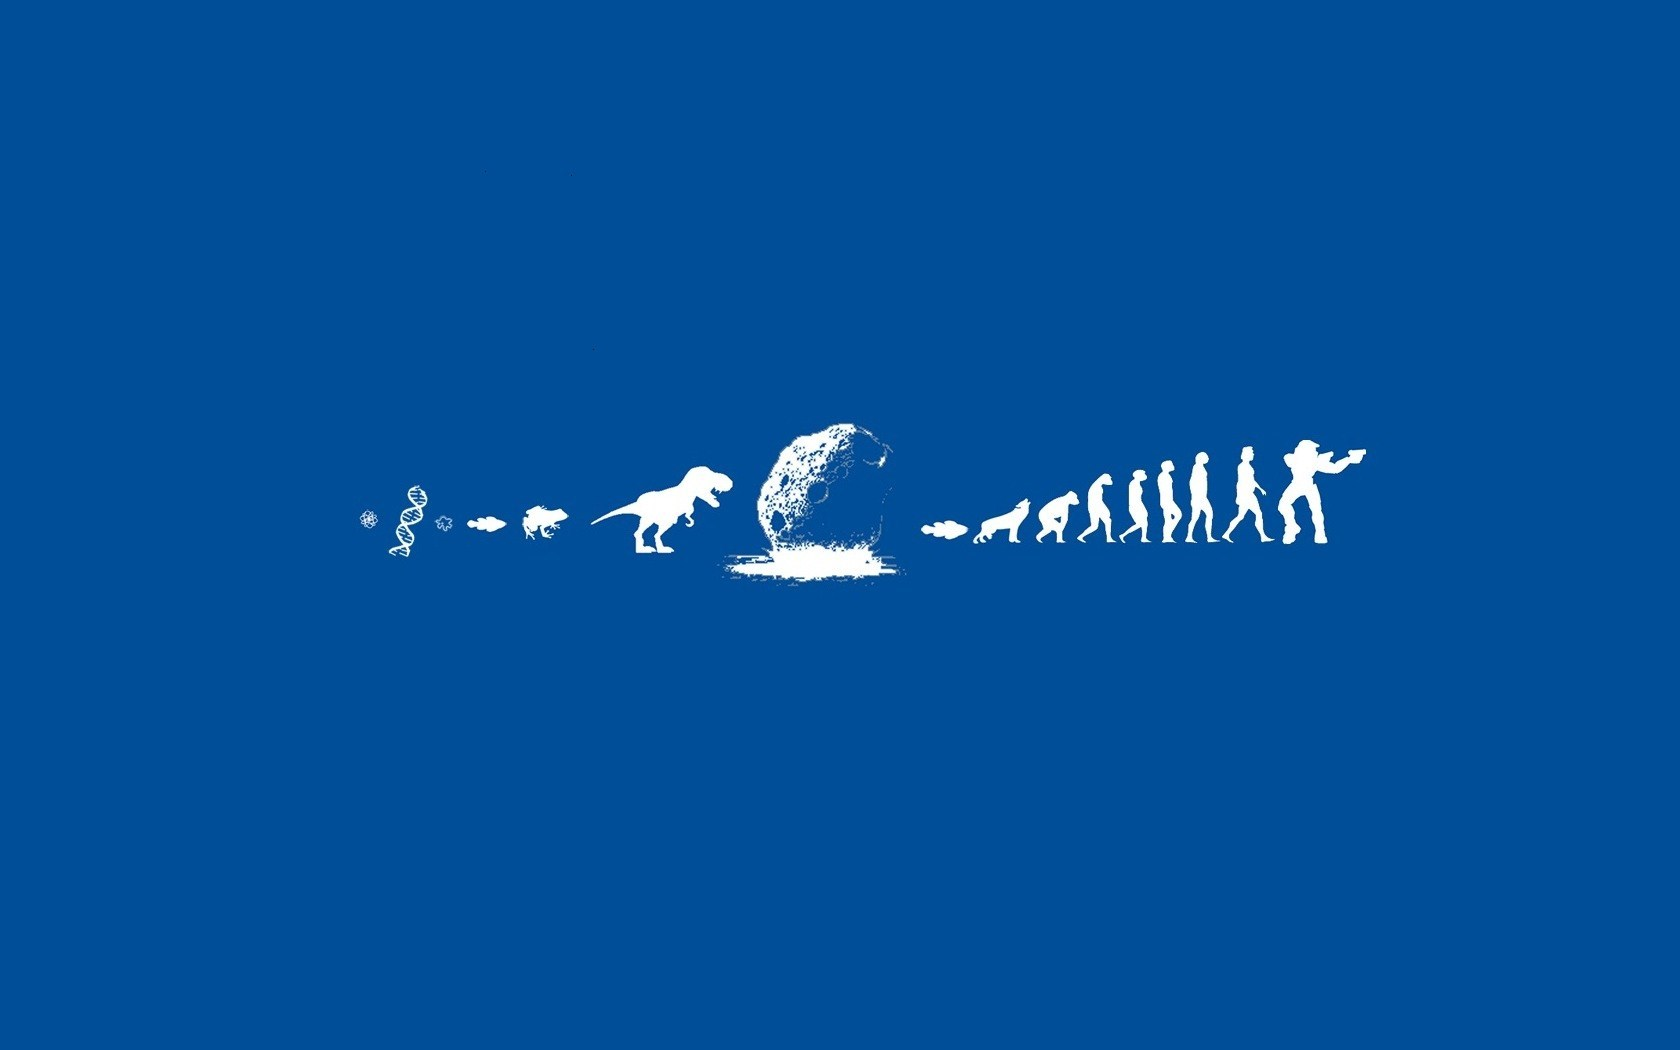 Human Evolution Creative